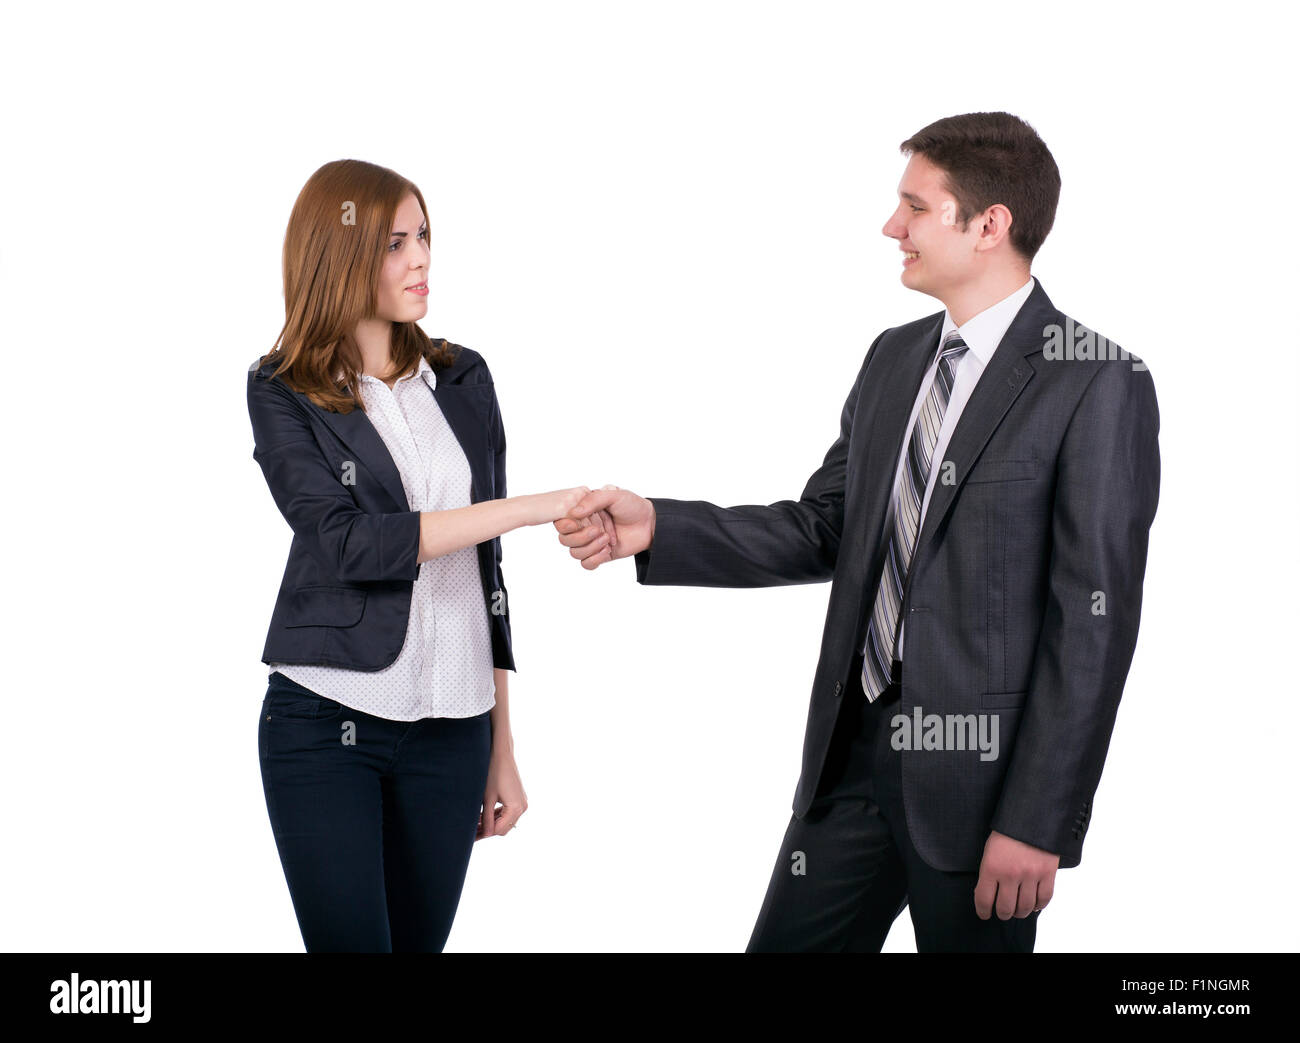 Introduction of male and female business people - Stock Image